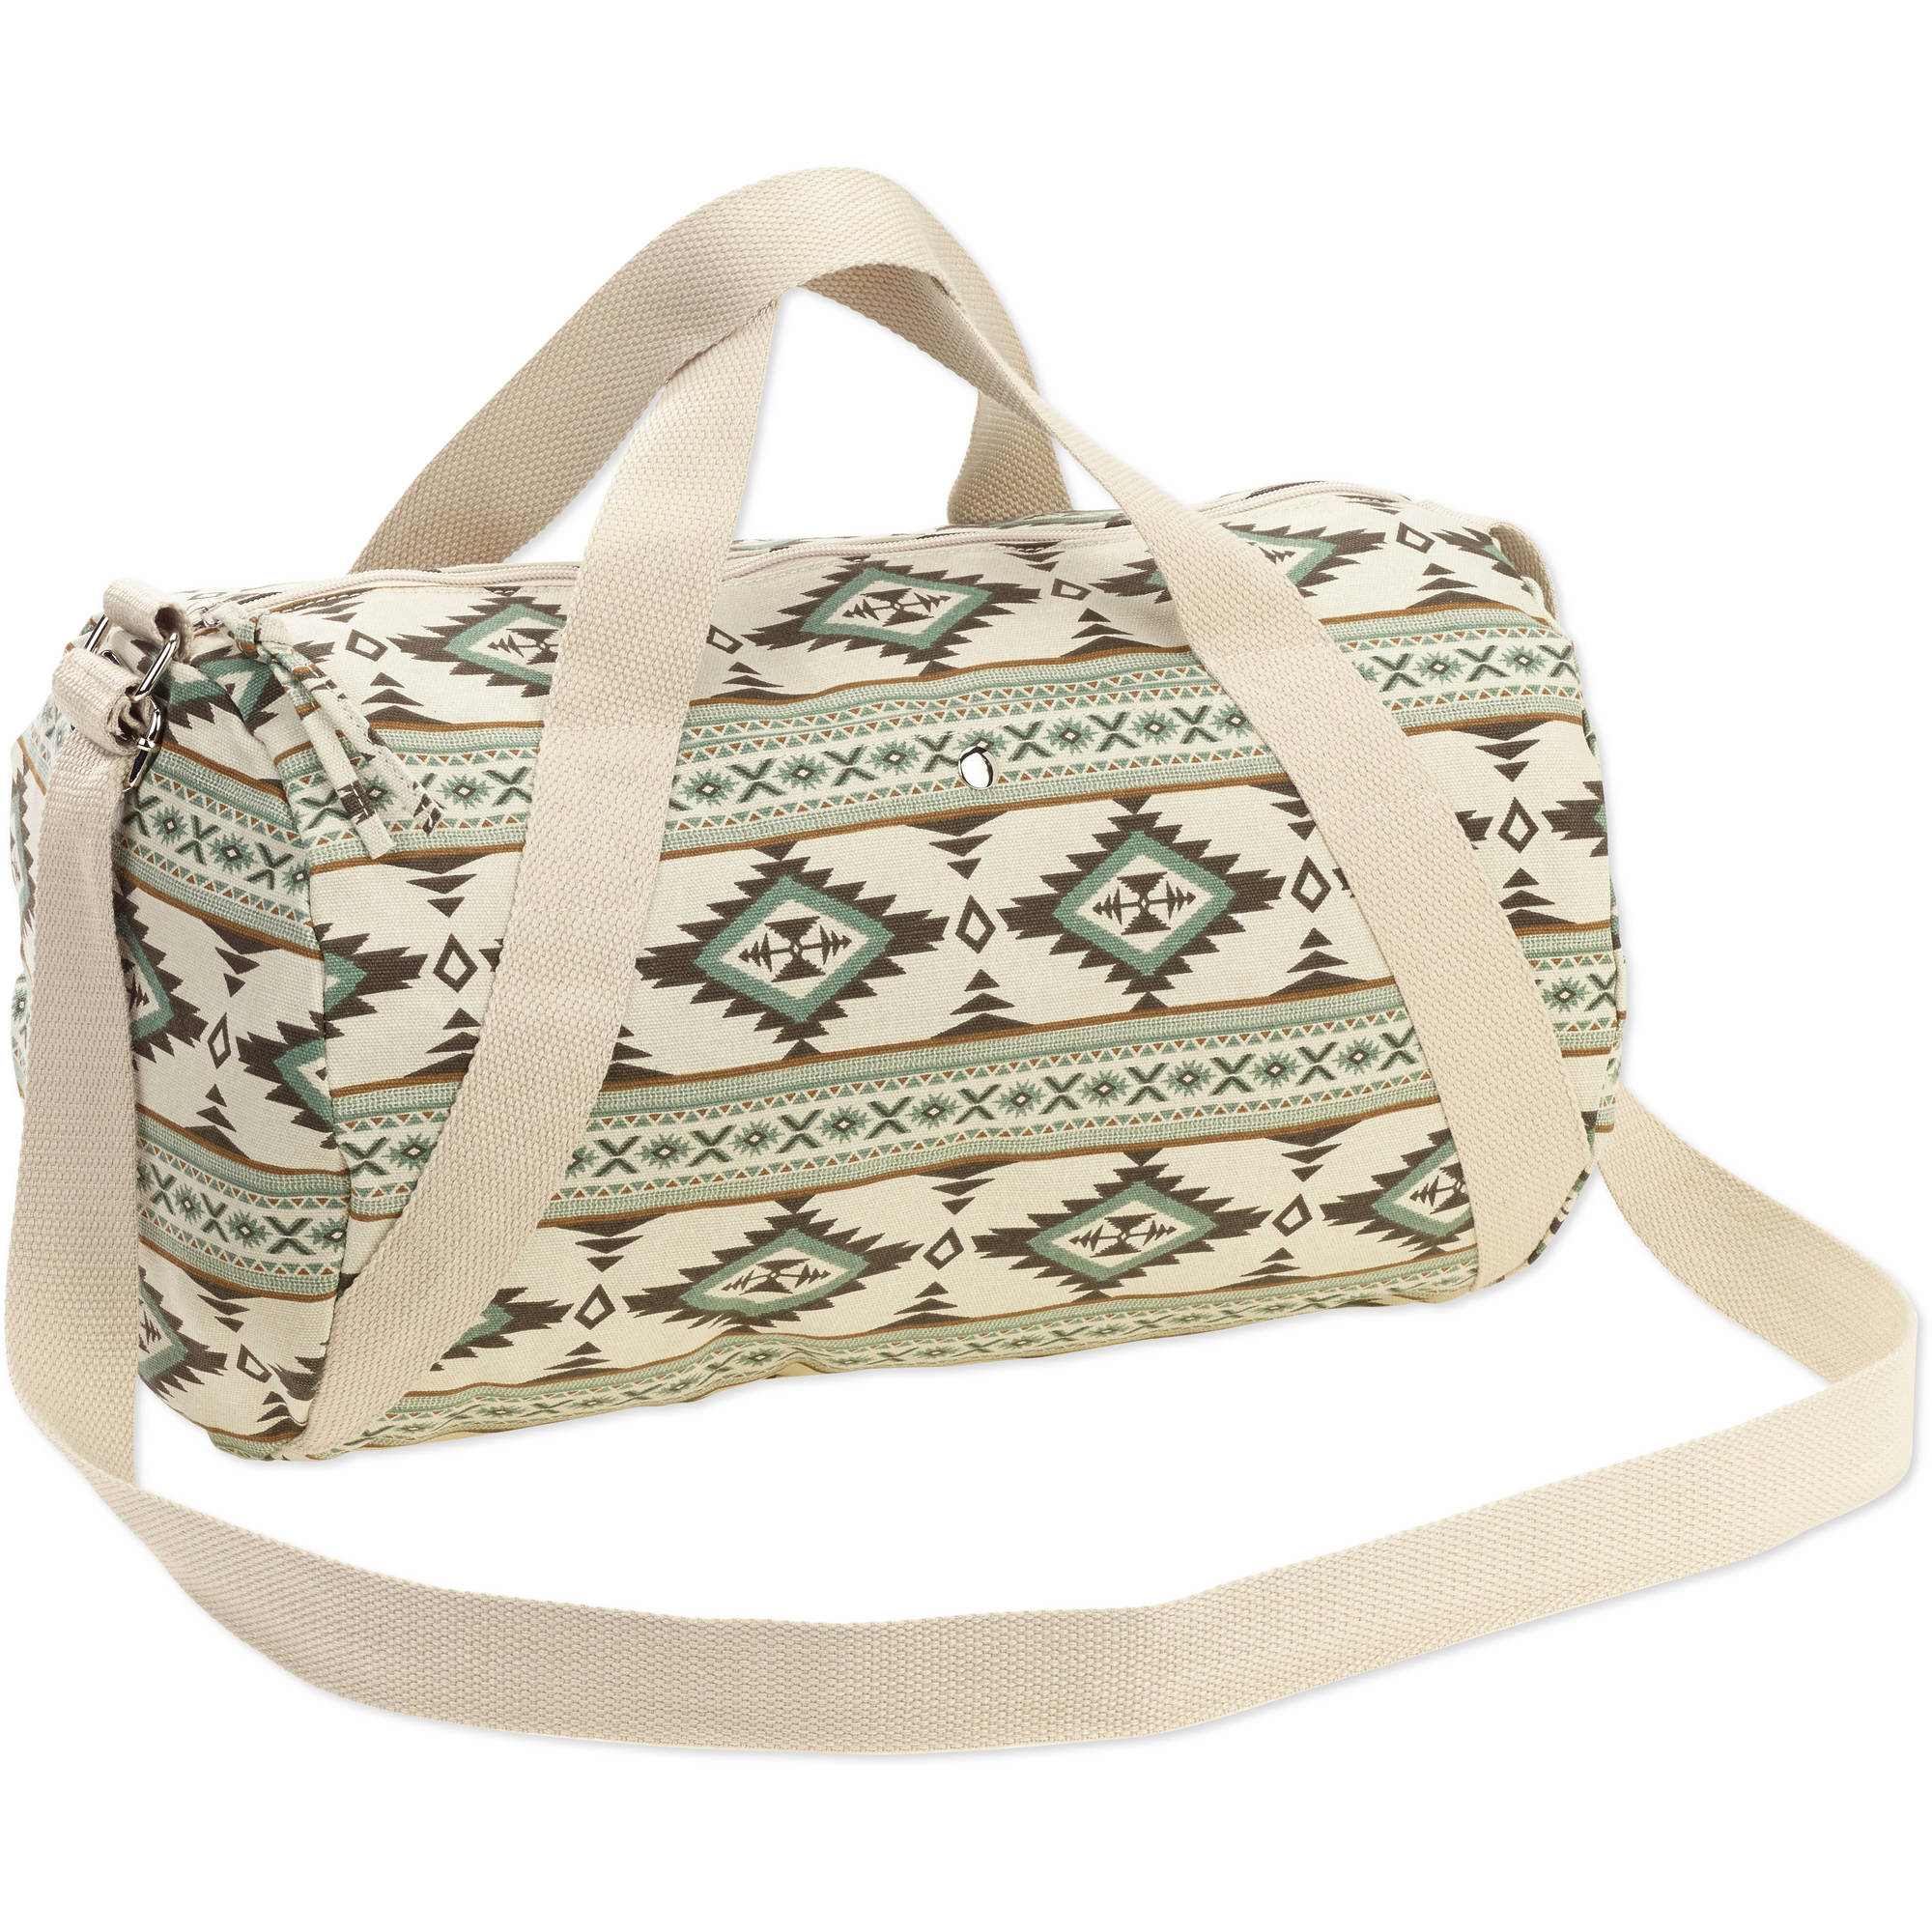 No Boundaries Women's Mini Duffle Handbag